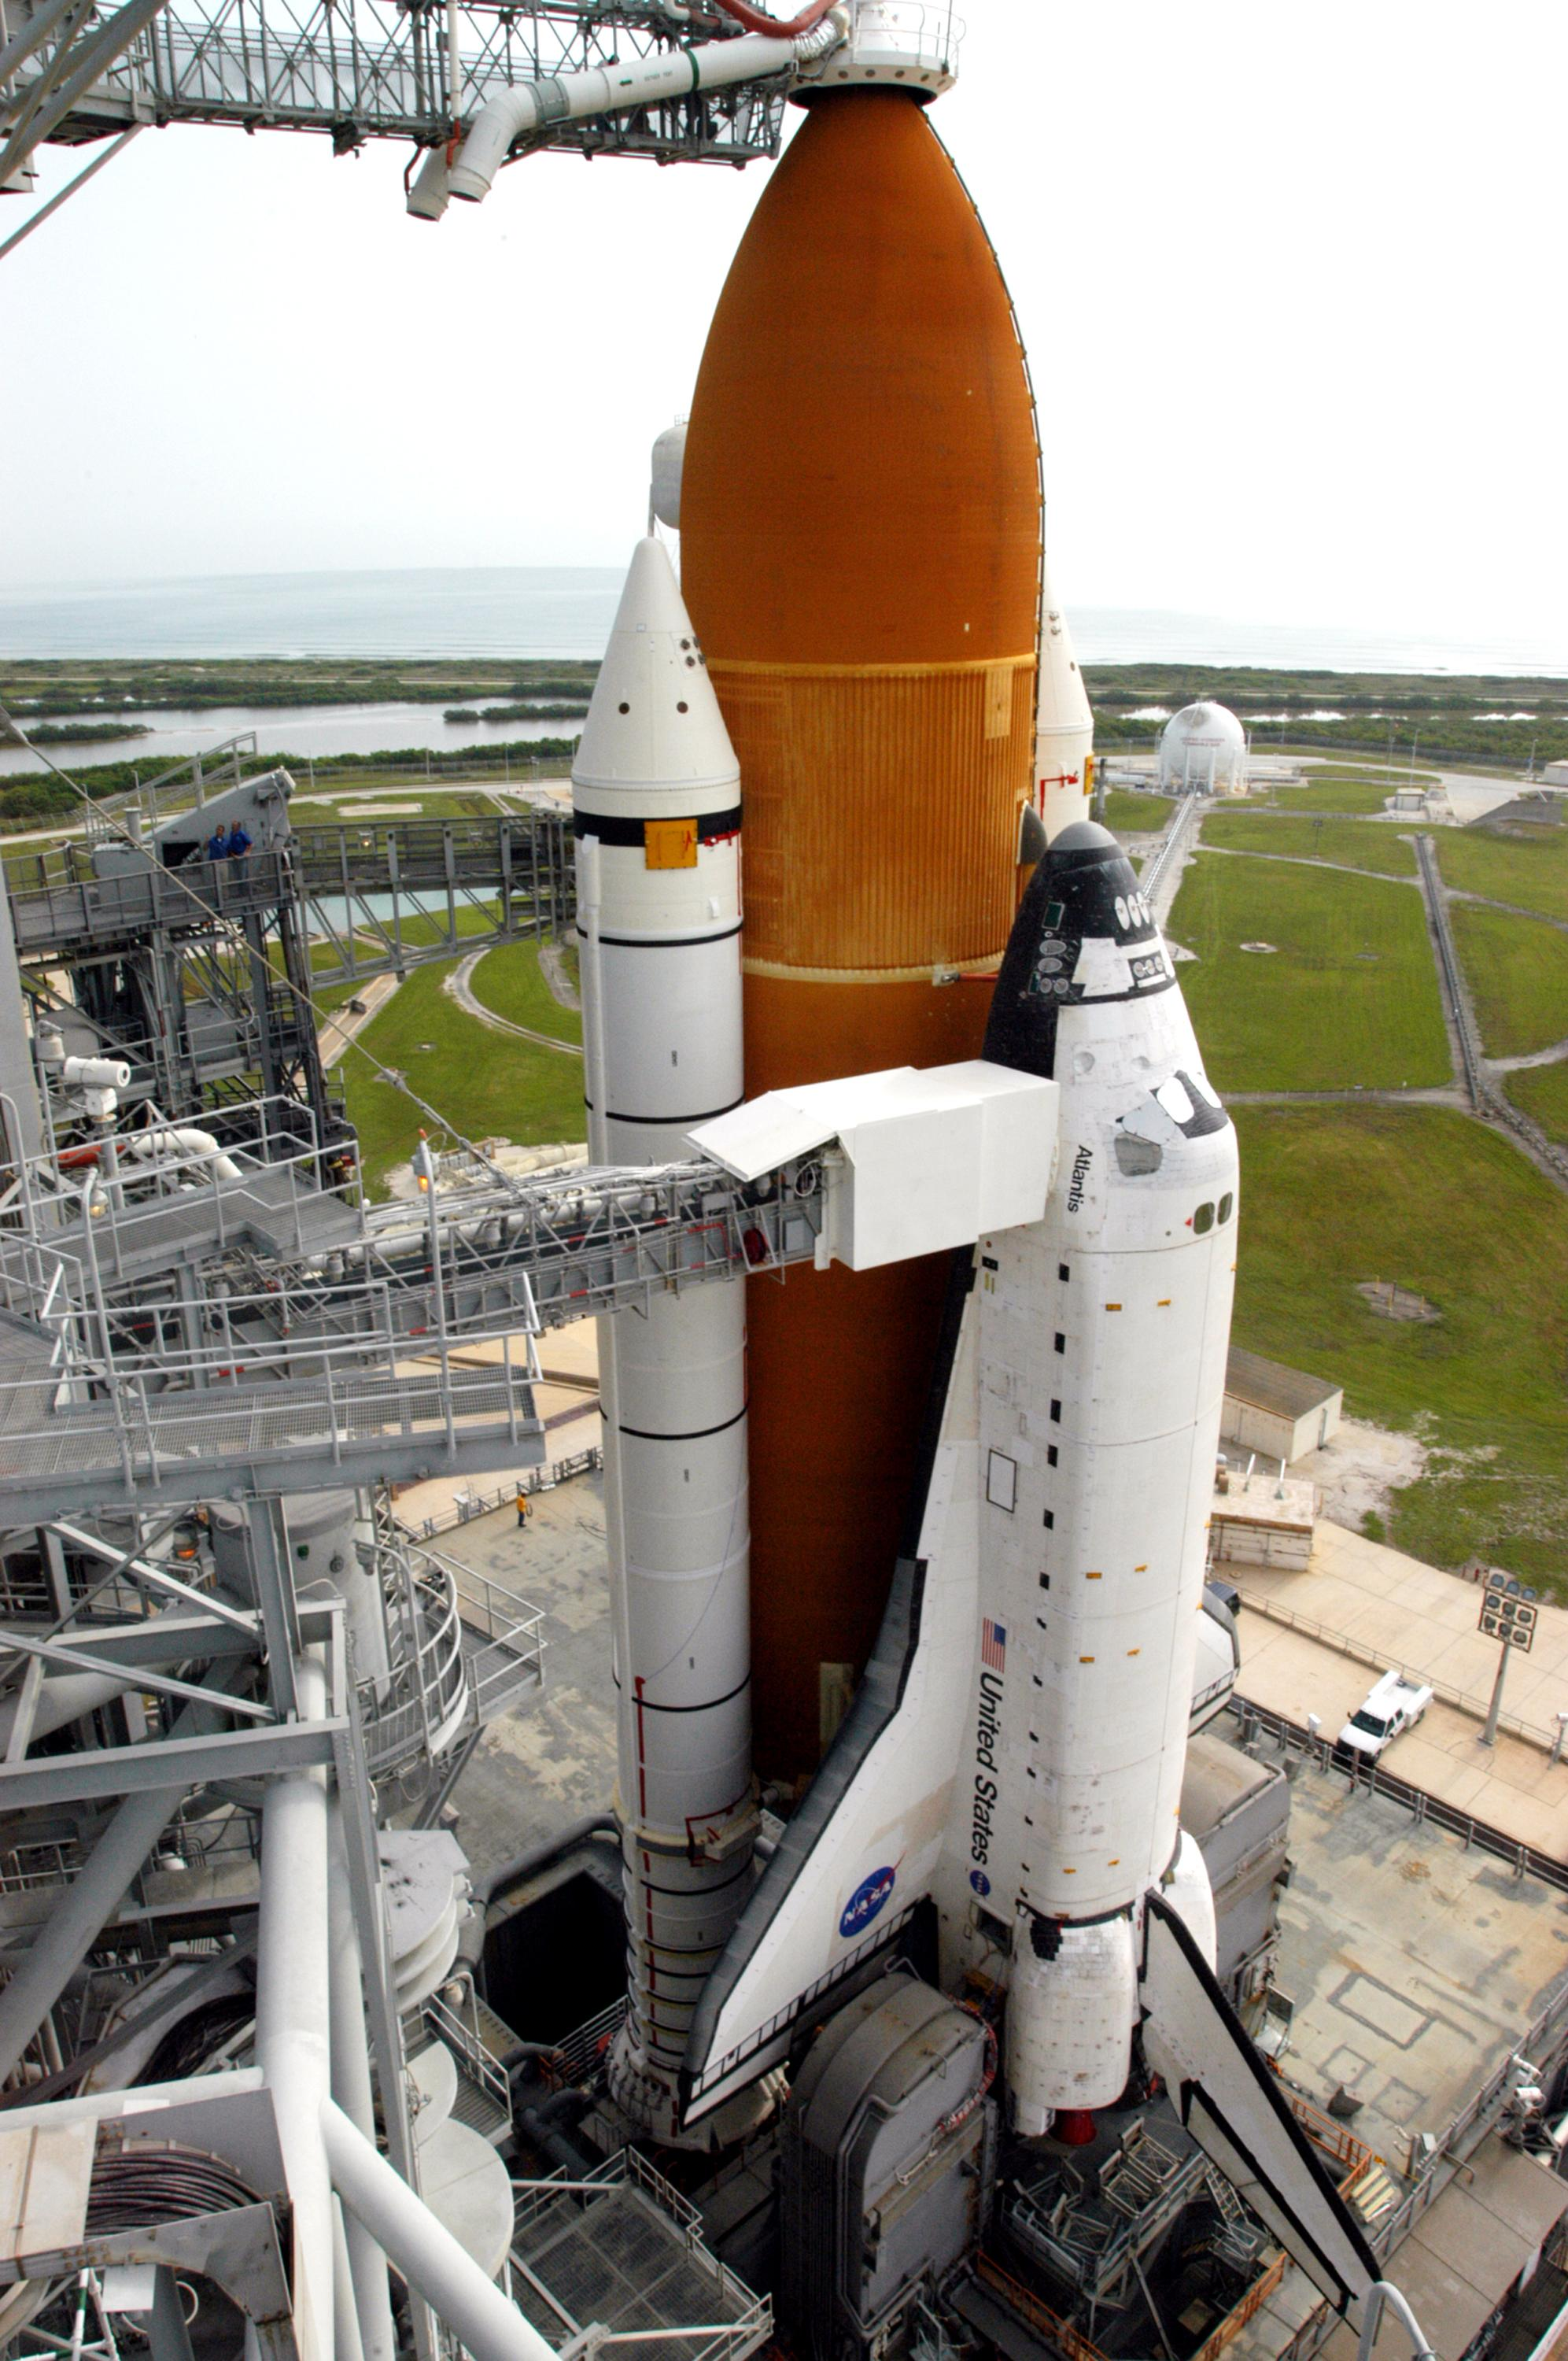 pictures of space shuttle atlantis - photo #47